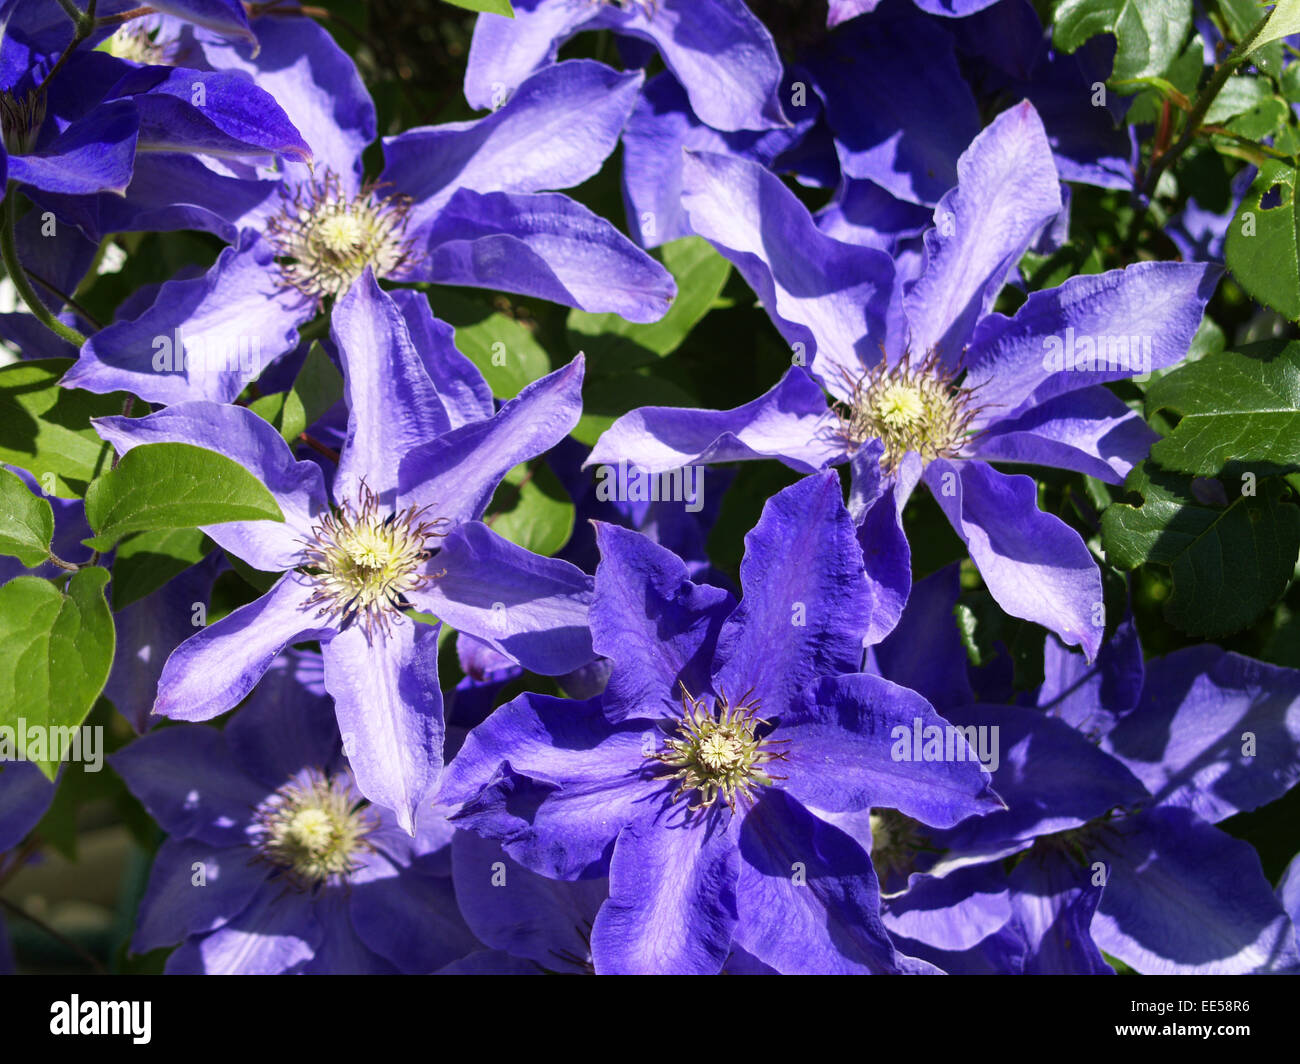 kletterpflanze clematis blueten violett natur vegetation stock photo royalty free image. Black Bedroom Furniture Sets. Home Design Ideas